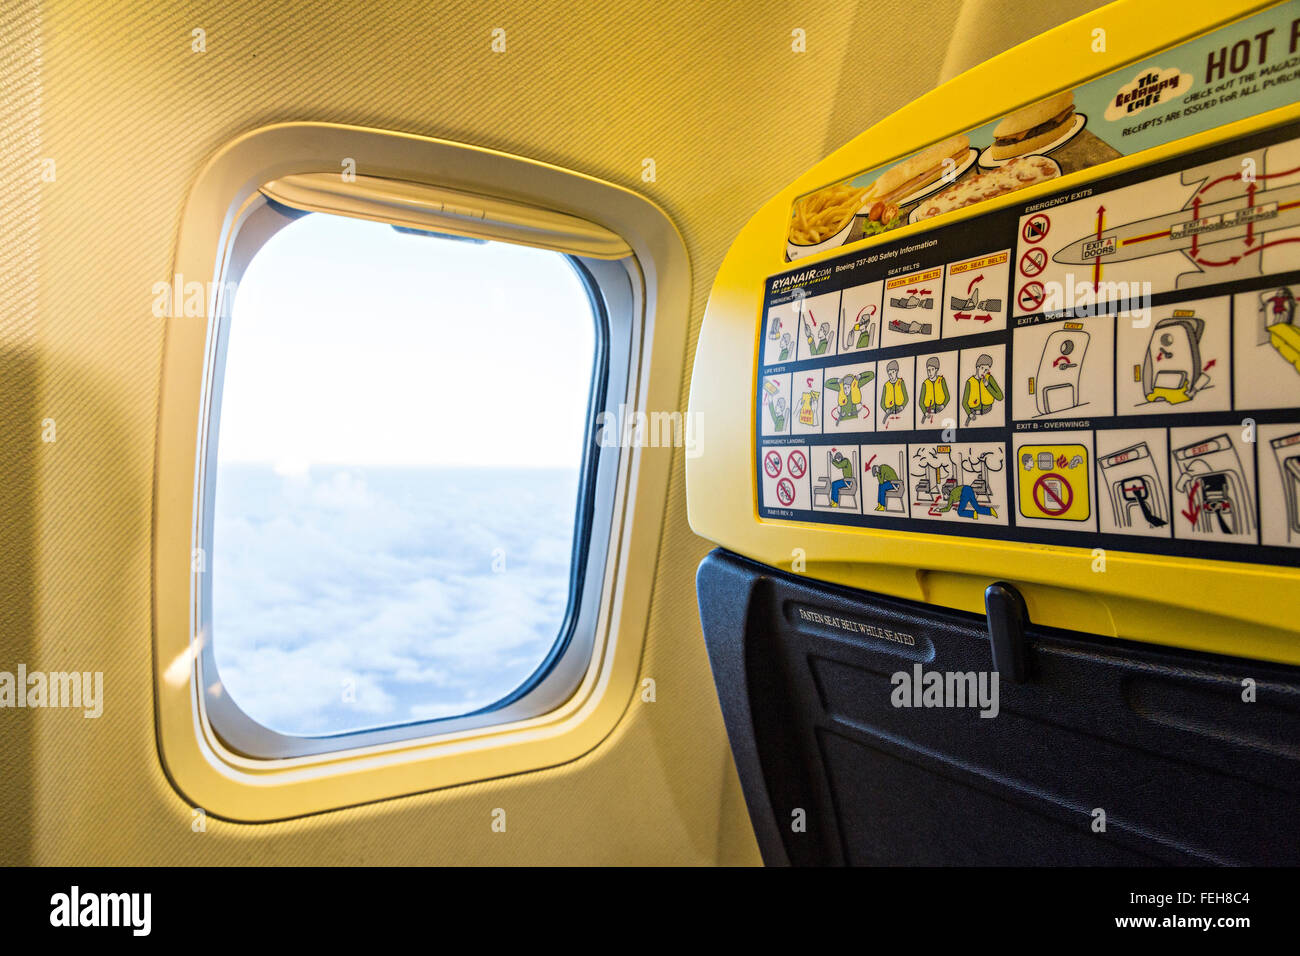 Safety instruction on chair back in Ryanair cabin during flight, UK - Stock Image